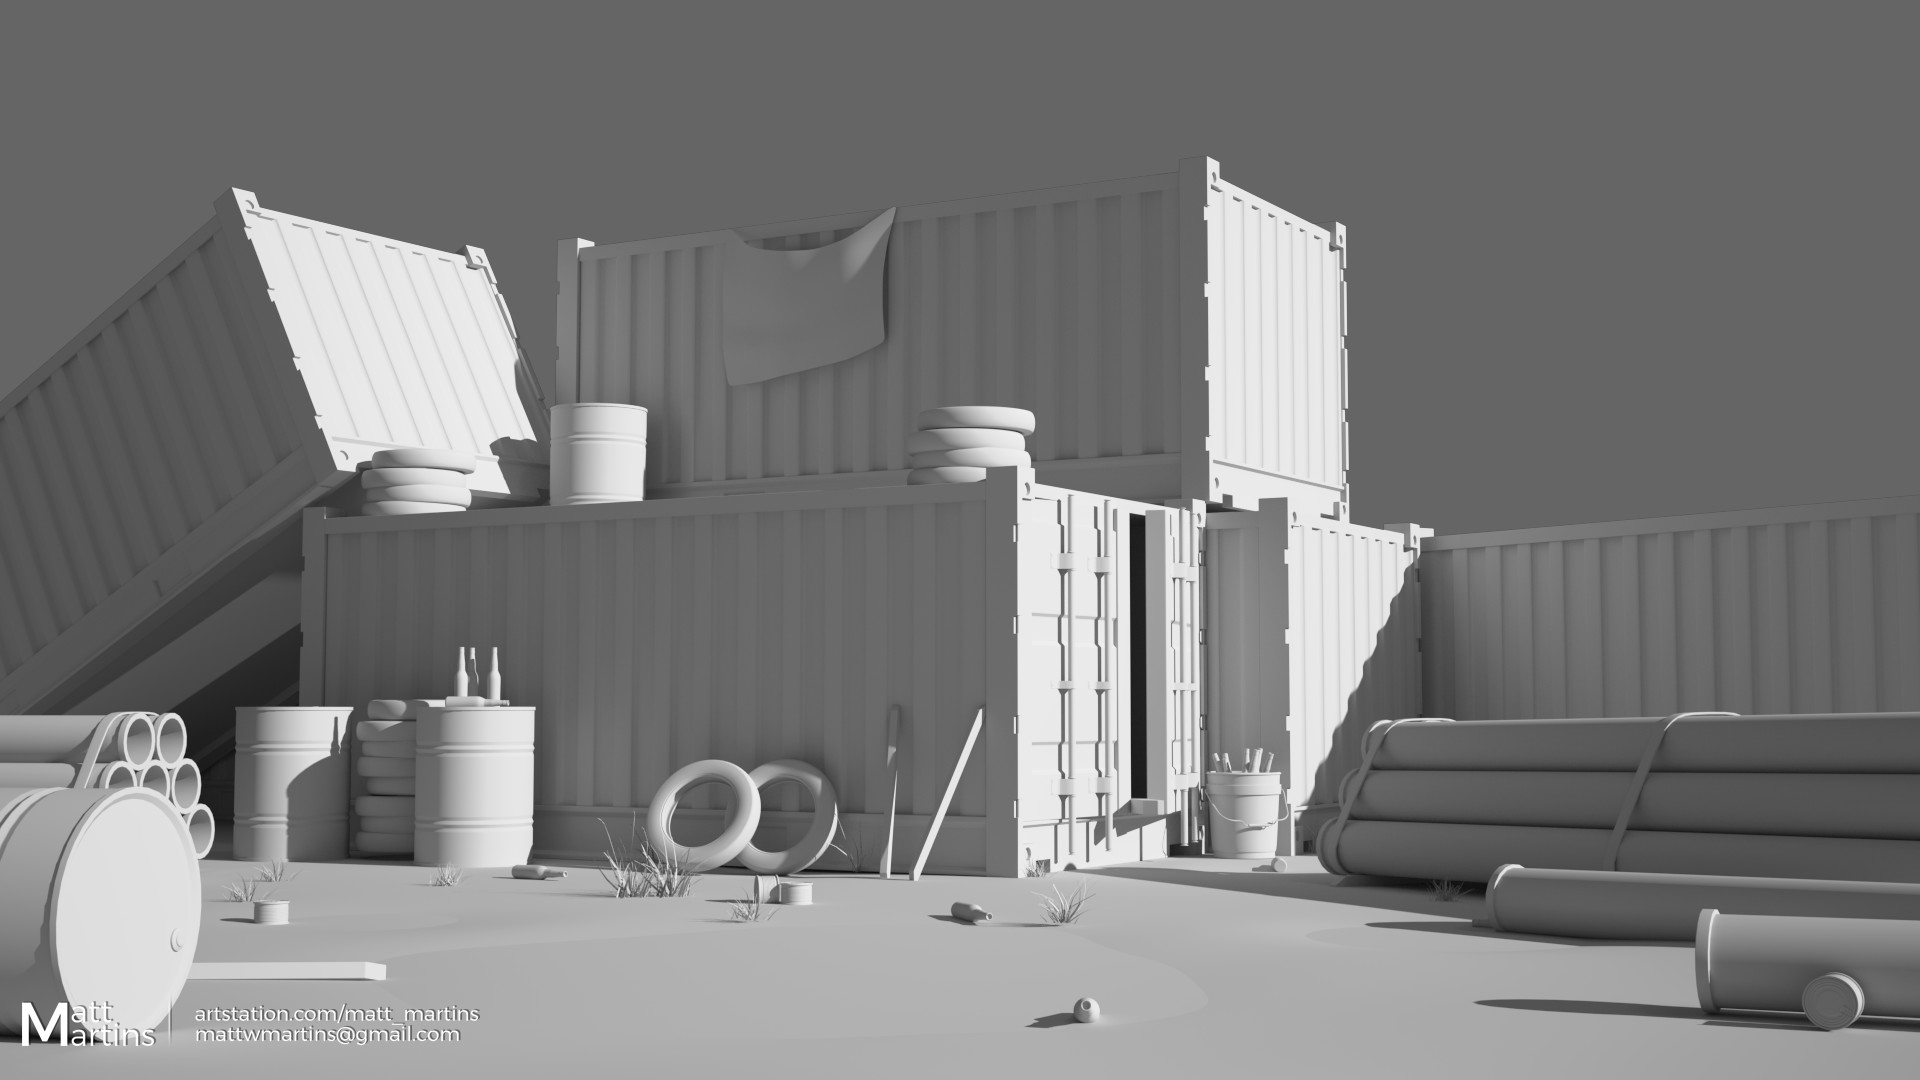 [Image: matt-martins-containerfortress-white.jpg?1545021302]